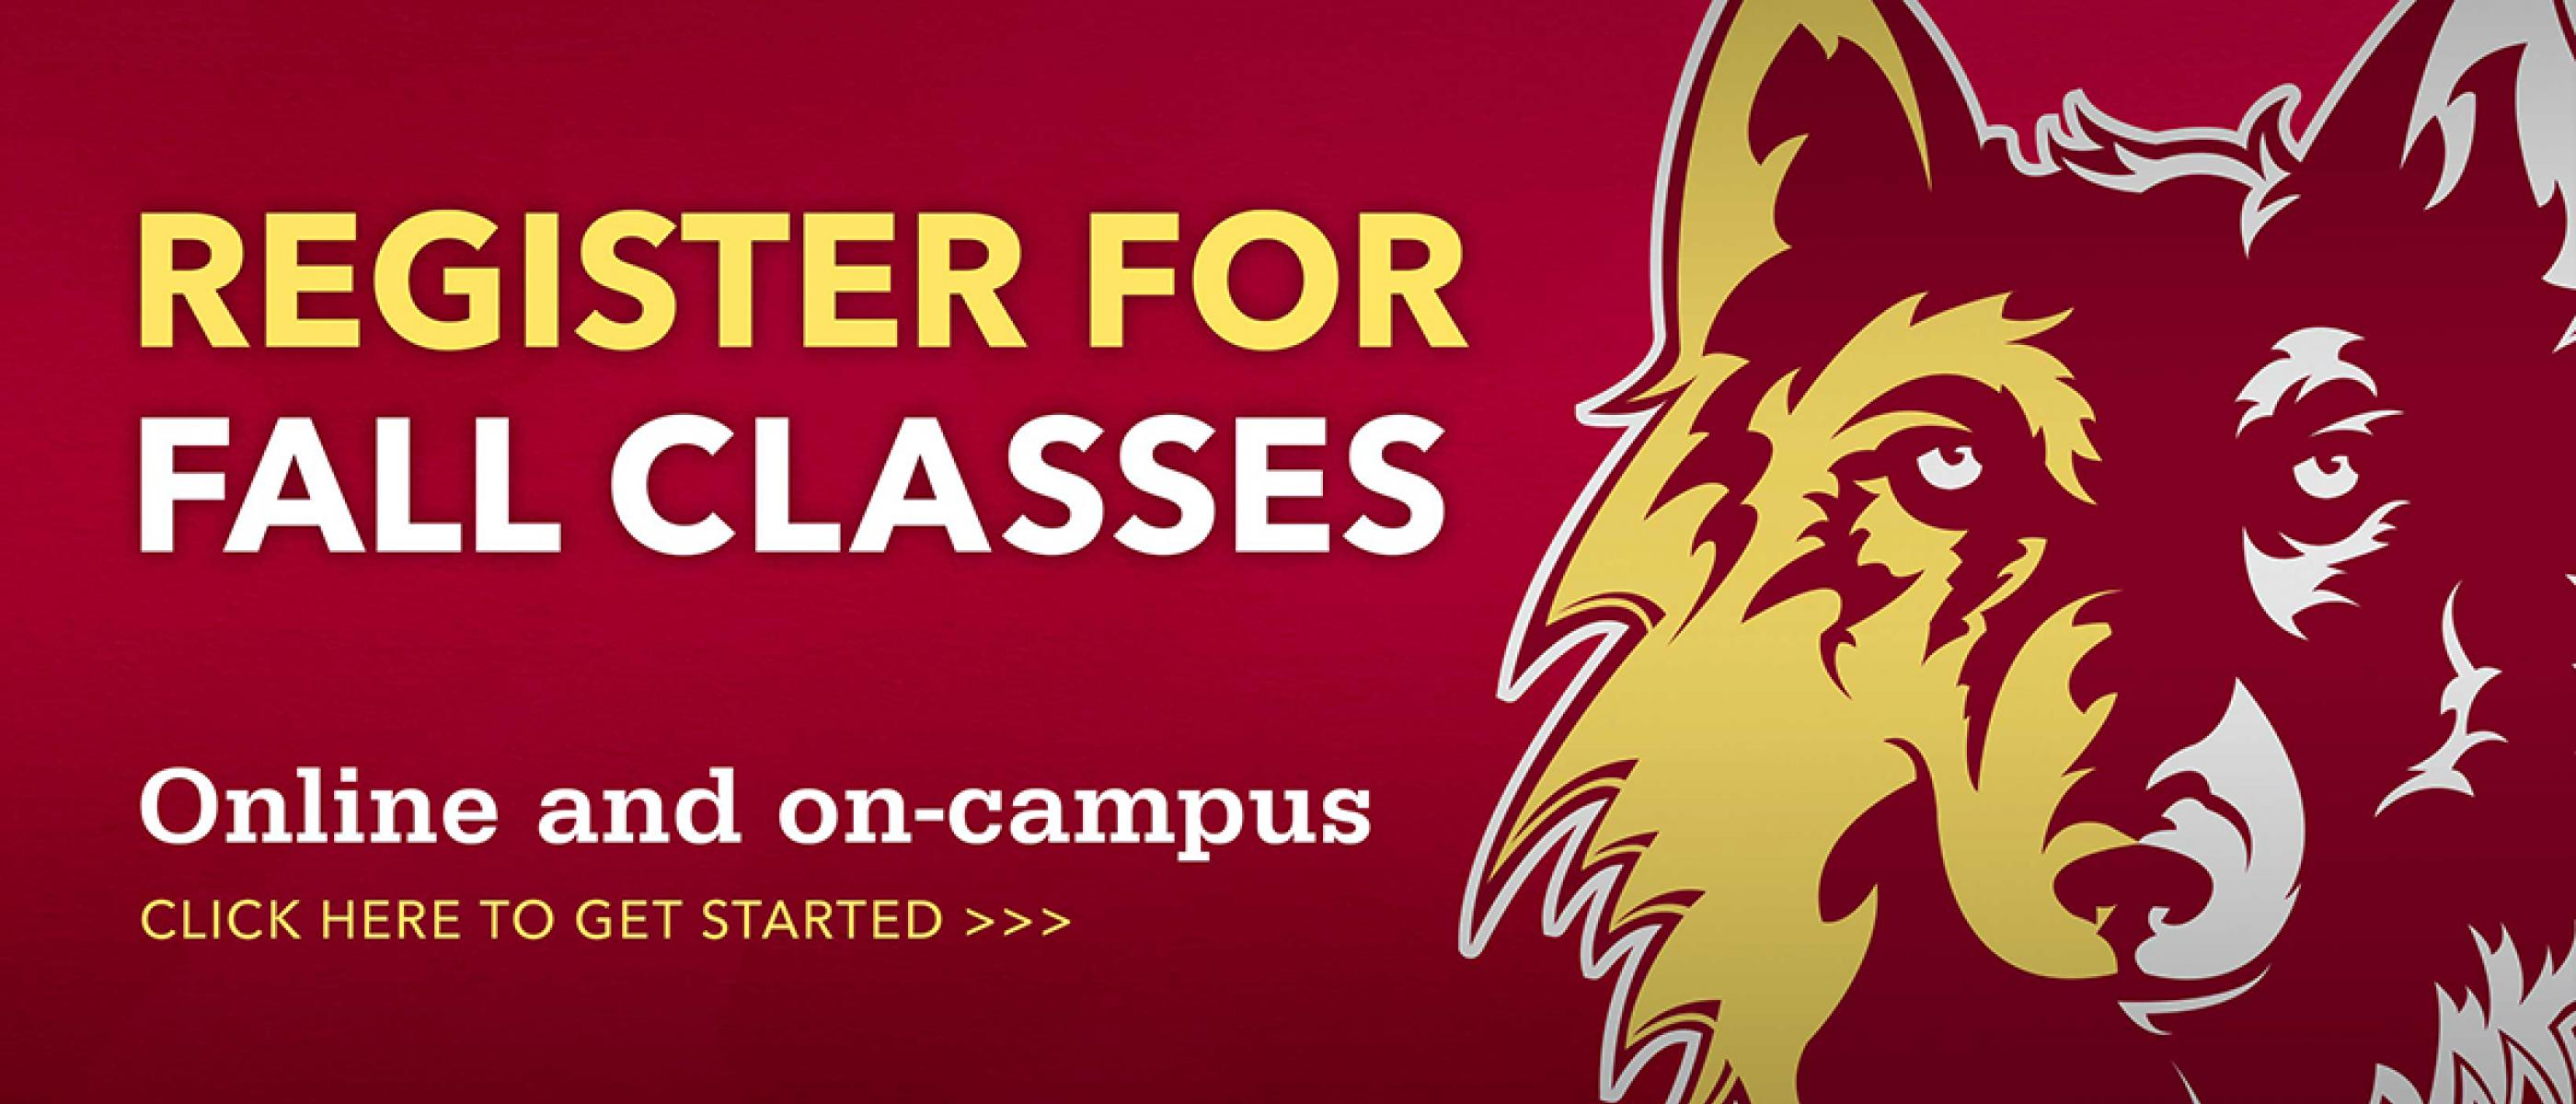 Register for fall classes online and on-campus